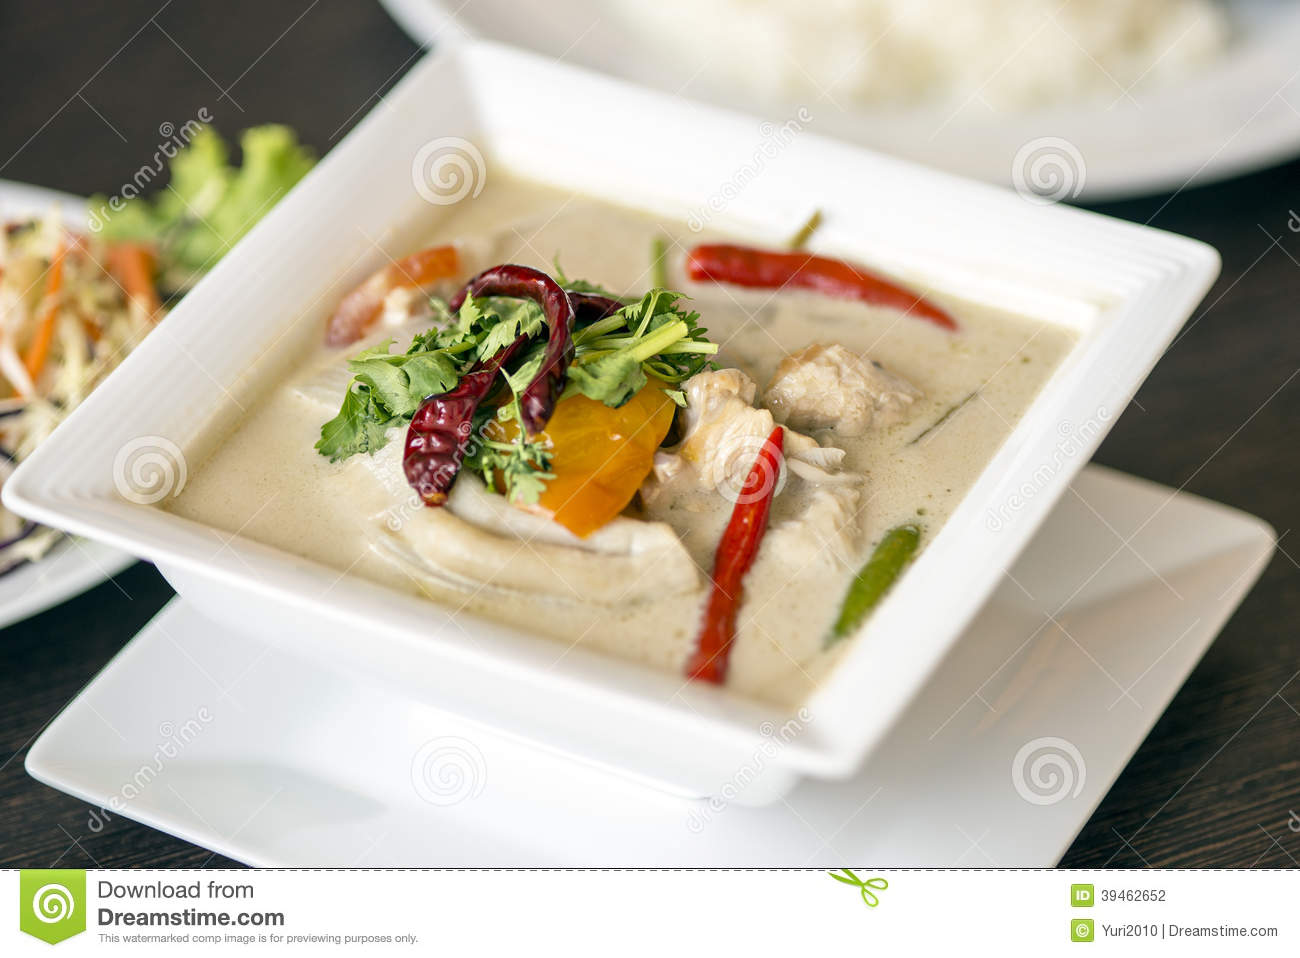 (tom kha kai)-chicken in coconut milk soup